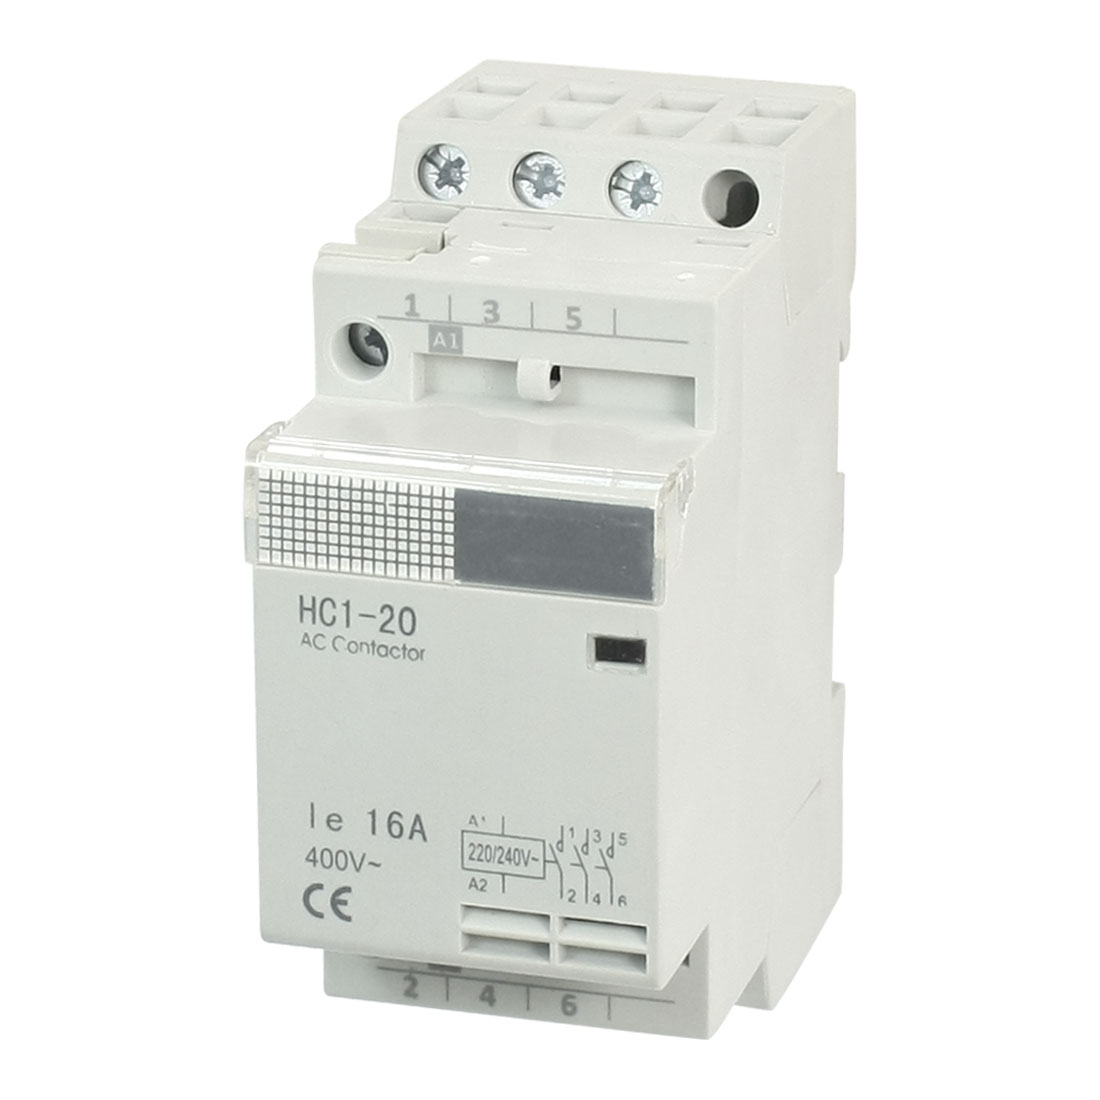 HC1-20 3 Pole DIN Rail Mounting Module AC Contactor 220/240V Coil 16A